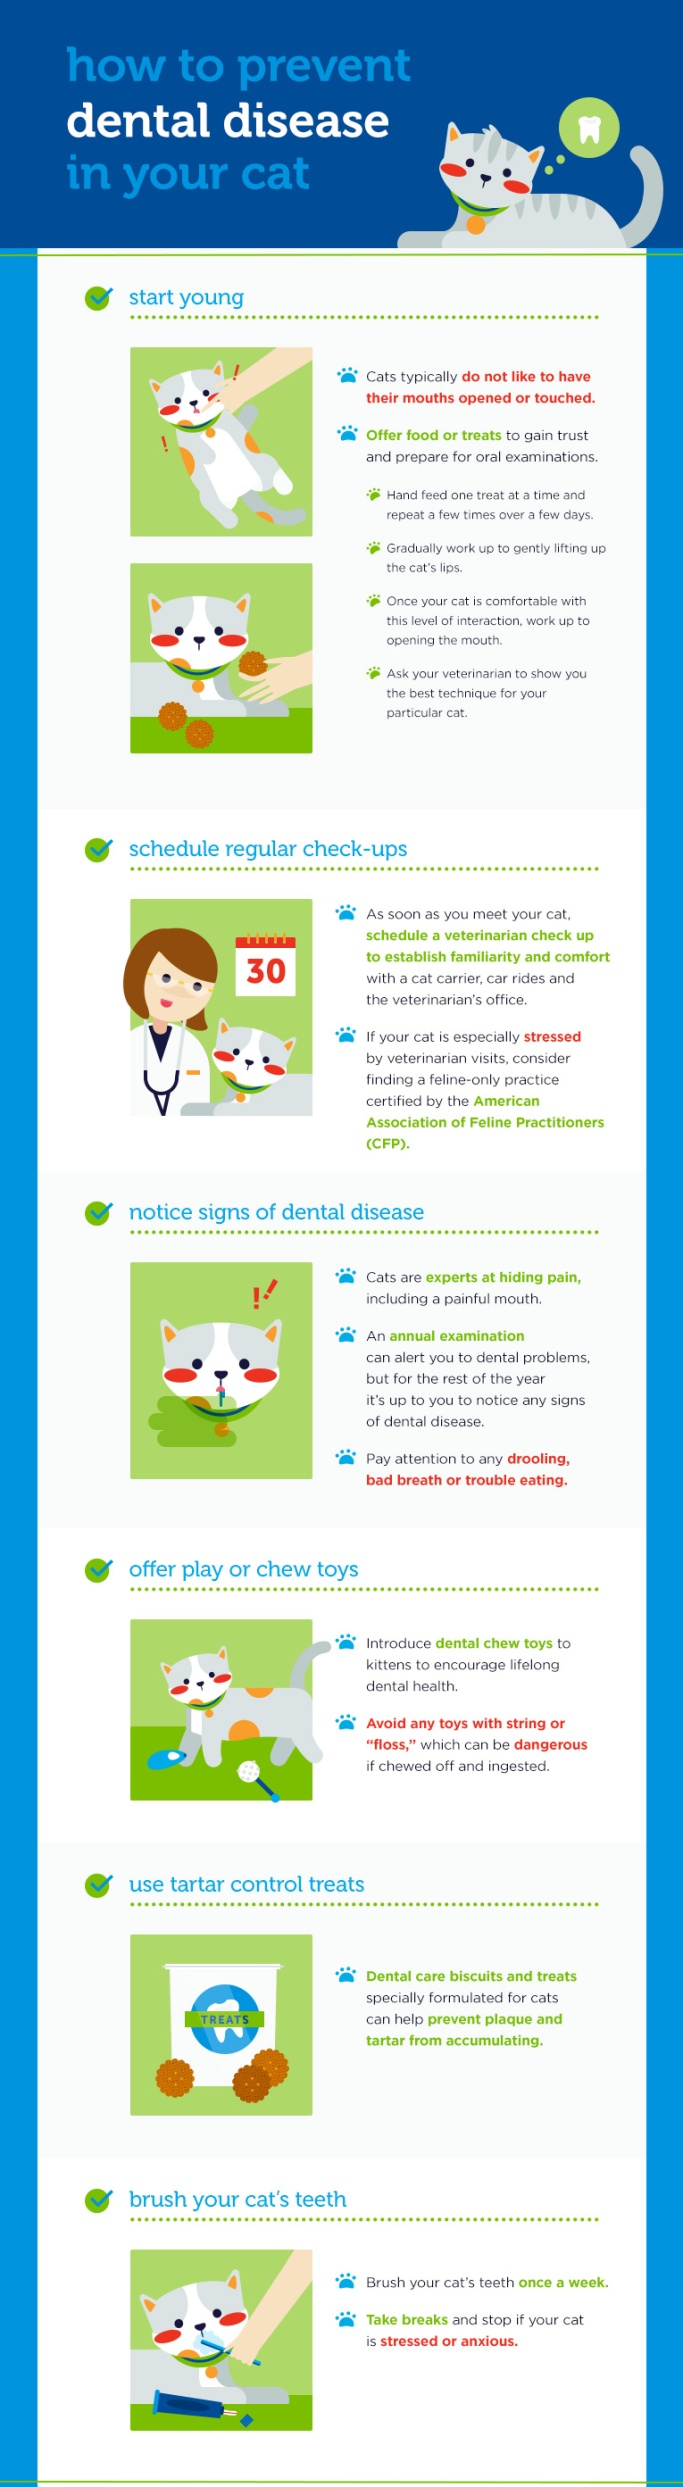 how to prevent dental disease